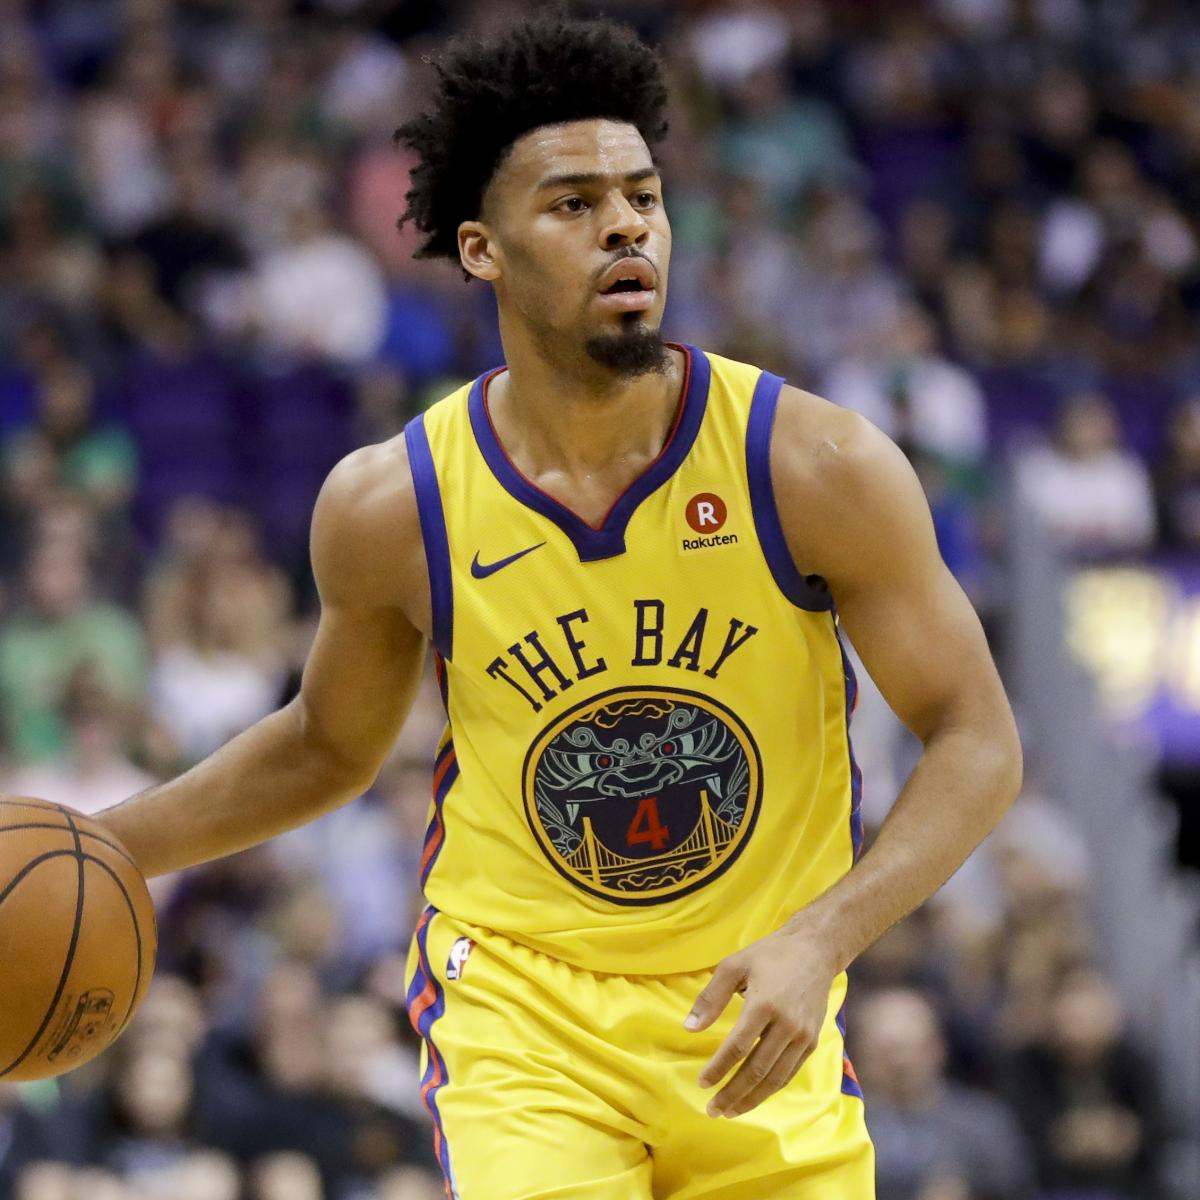 Warriors Full Game Highlights Game 3: Quinn Cook Agrees To Multiyear Contract With Warriors